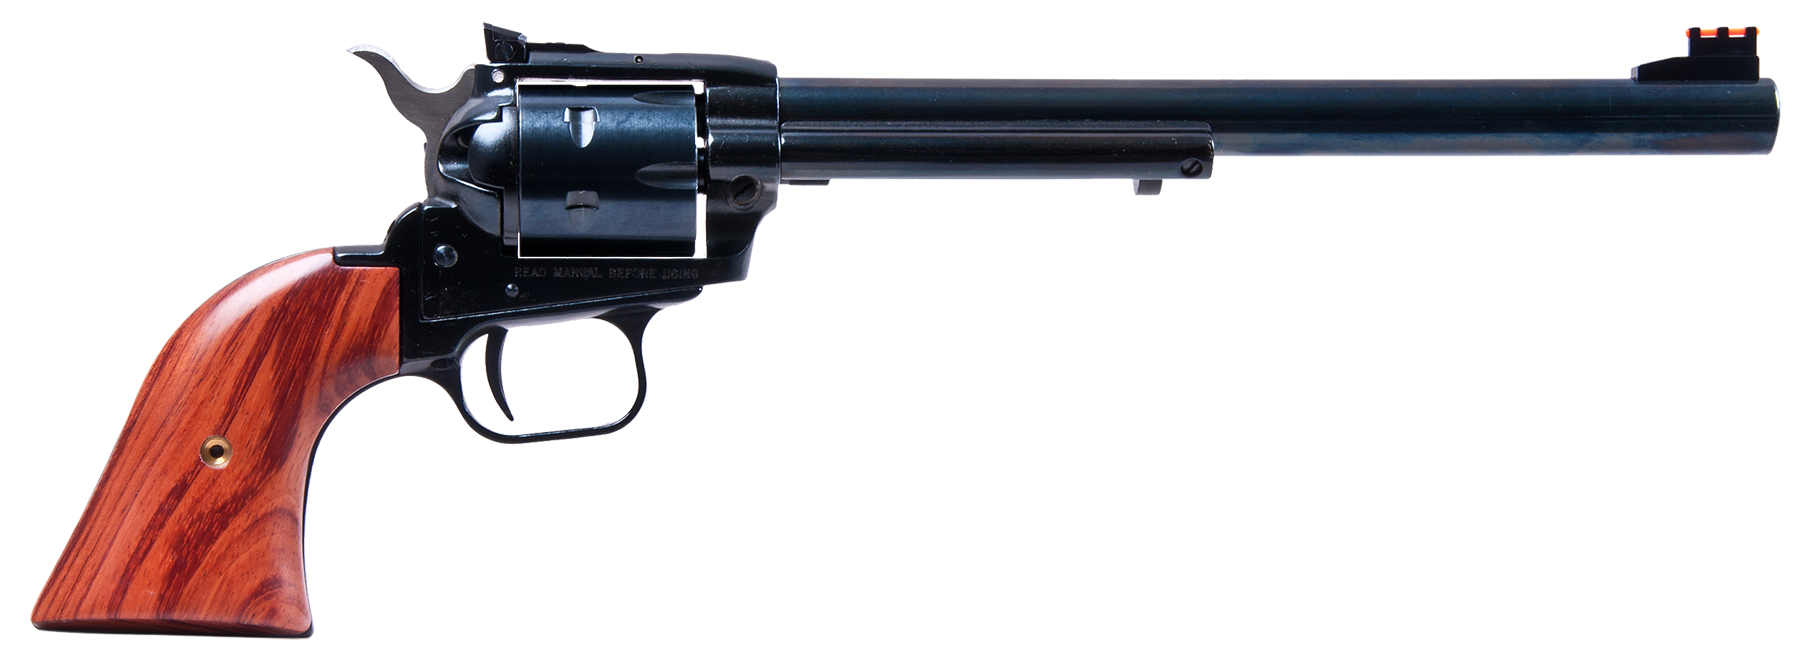 Heritage Mfg RR22MB9AS Rough Rider Small Bore Single 22 Long Rifle/22 Winchester Magnum Rimfire (WMR) 9